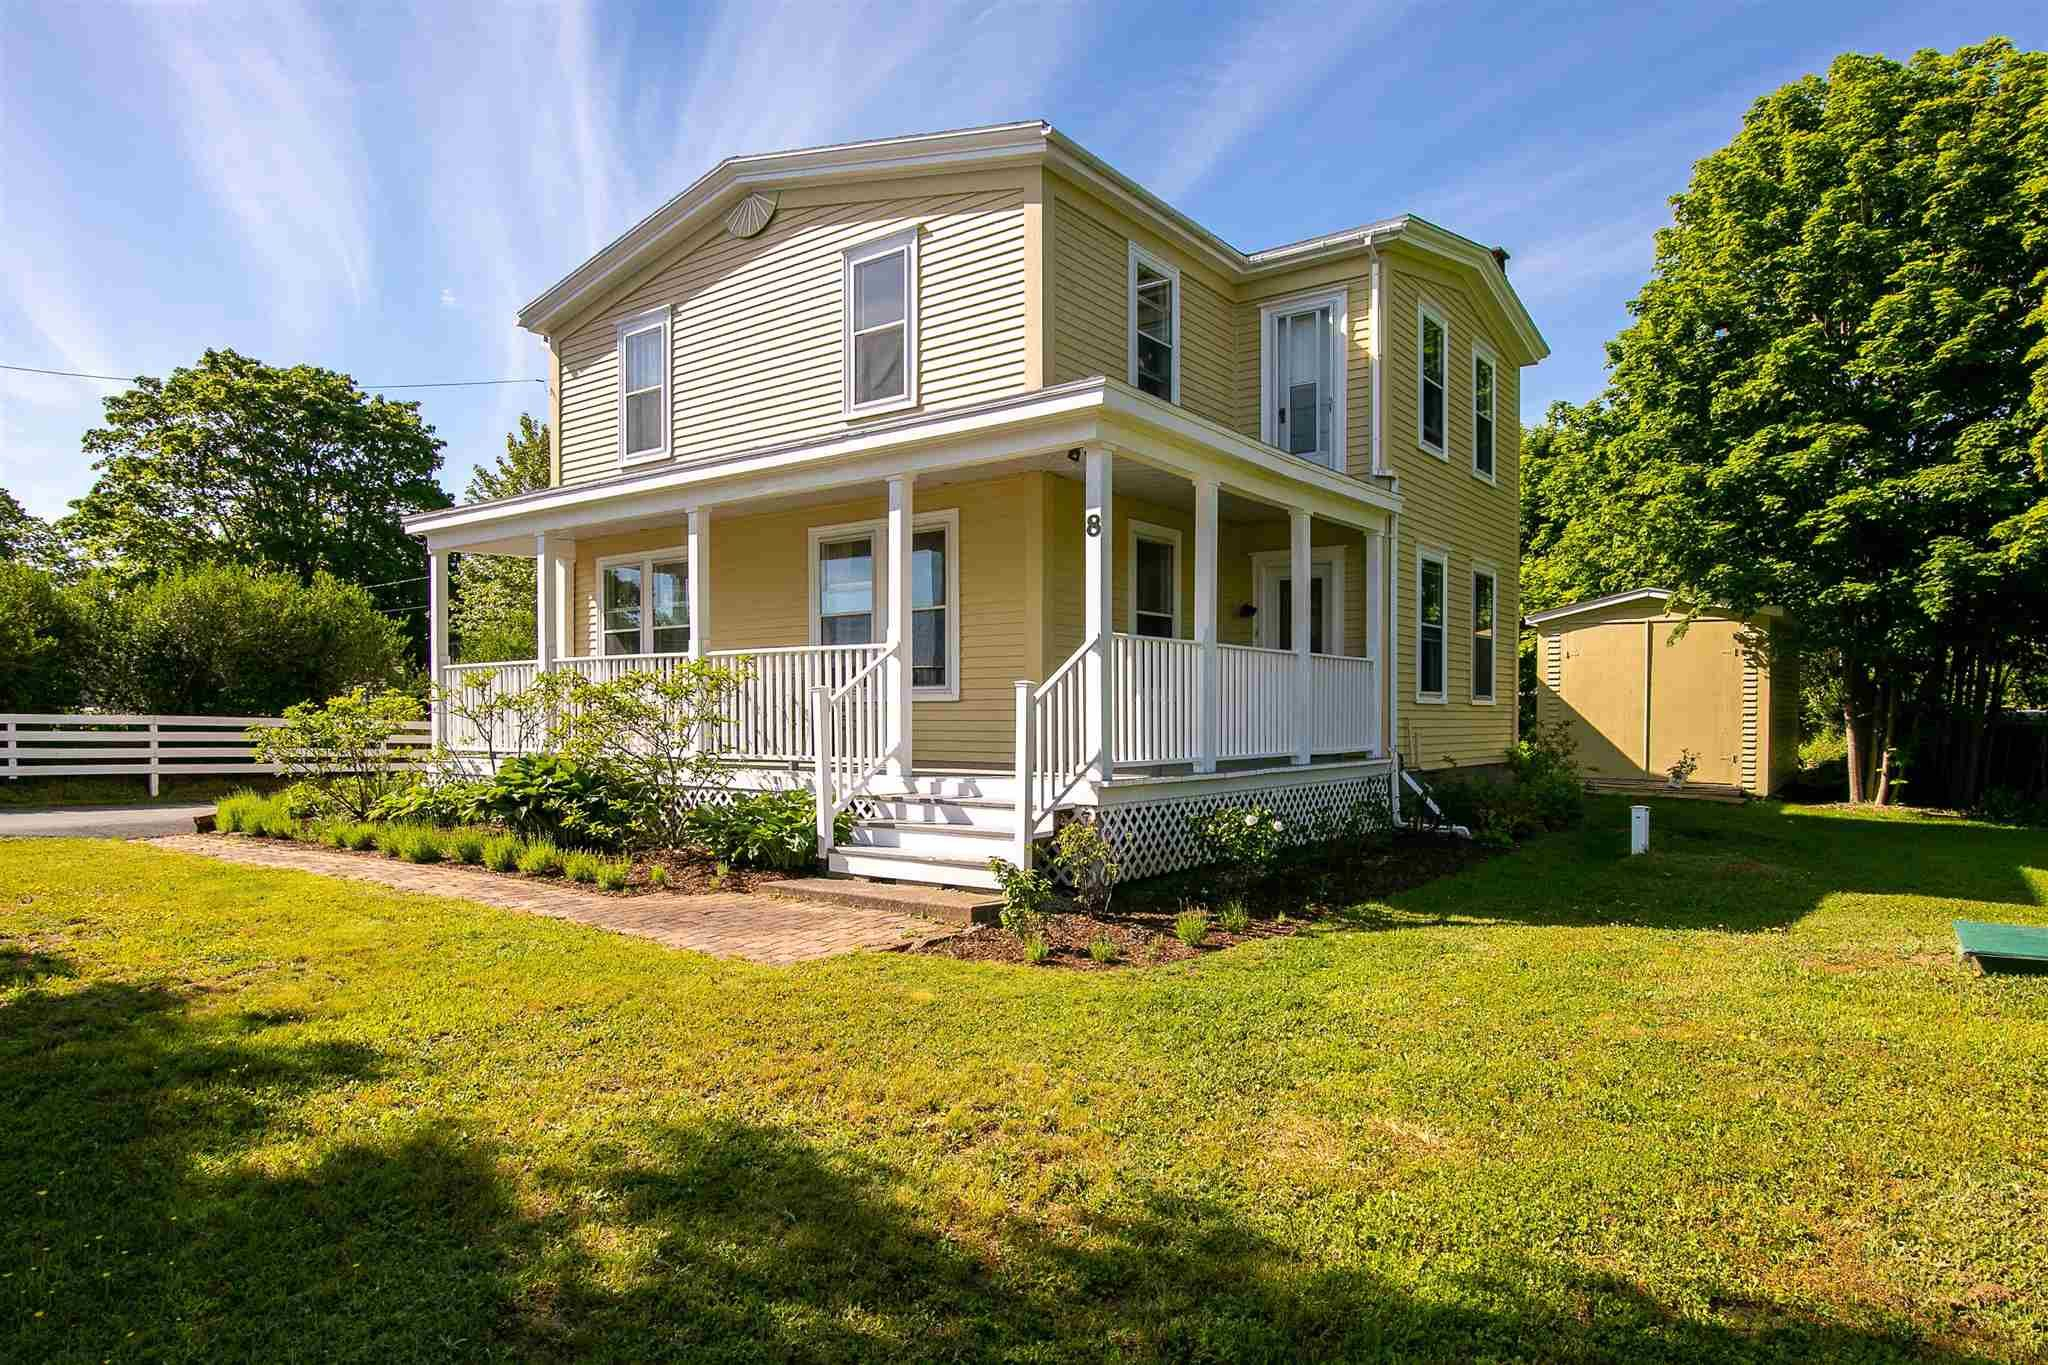 Main Photo: 8 Fort Point Road in Lahave: 405-Lunenburg County Residential for sale (South Shore)  : MLS®# 202115900